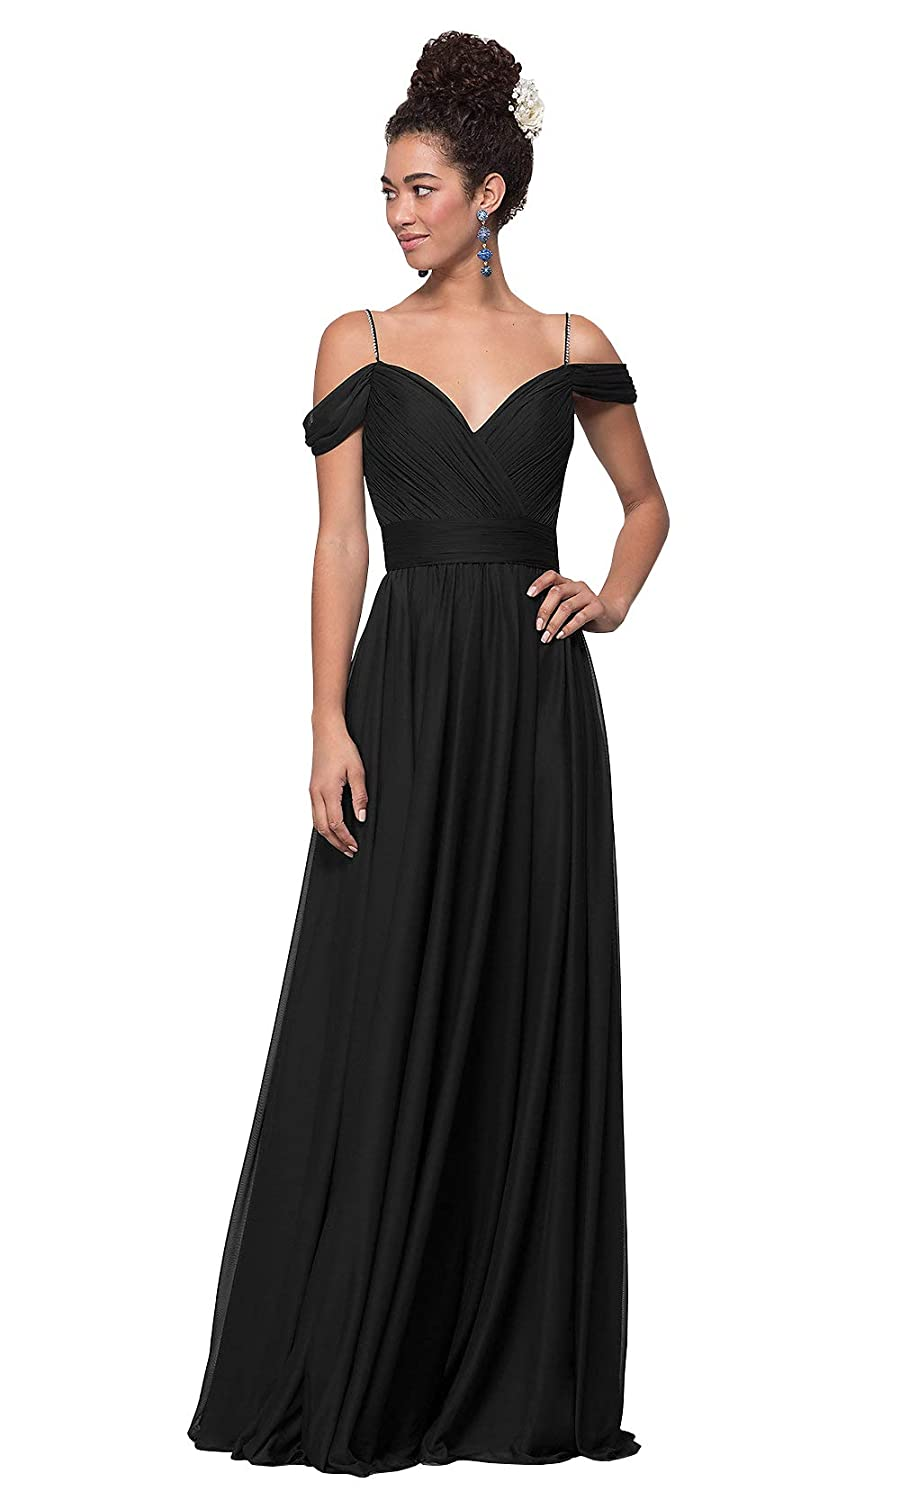 8e93e0250df Lianai Women s Off The Shoulder Chiffon Bridesmaid Dress with Beaded Straps  Formal Gown at Amazon Women s Clothing store